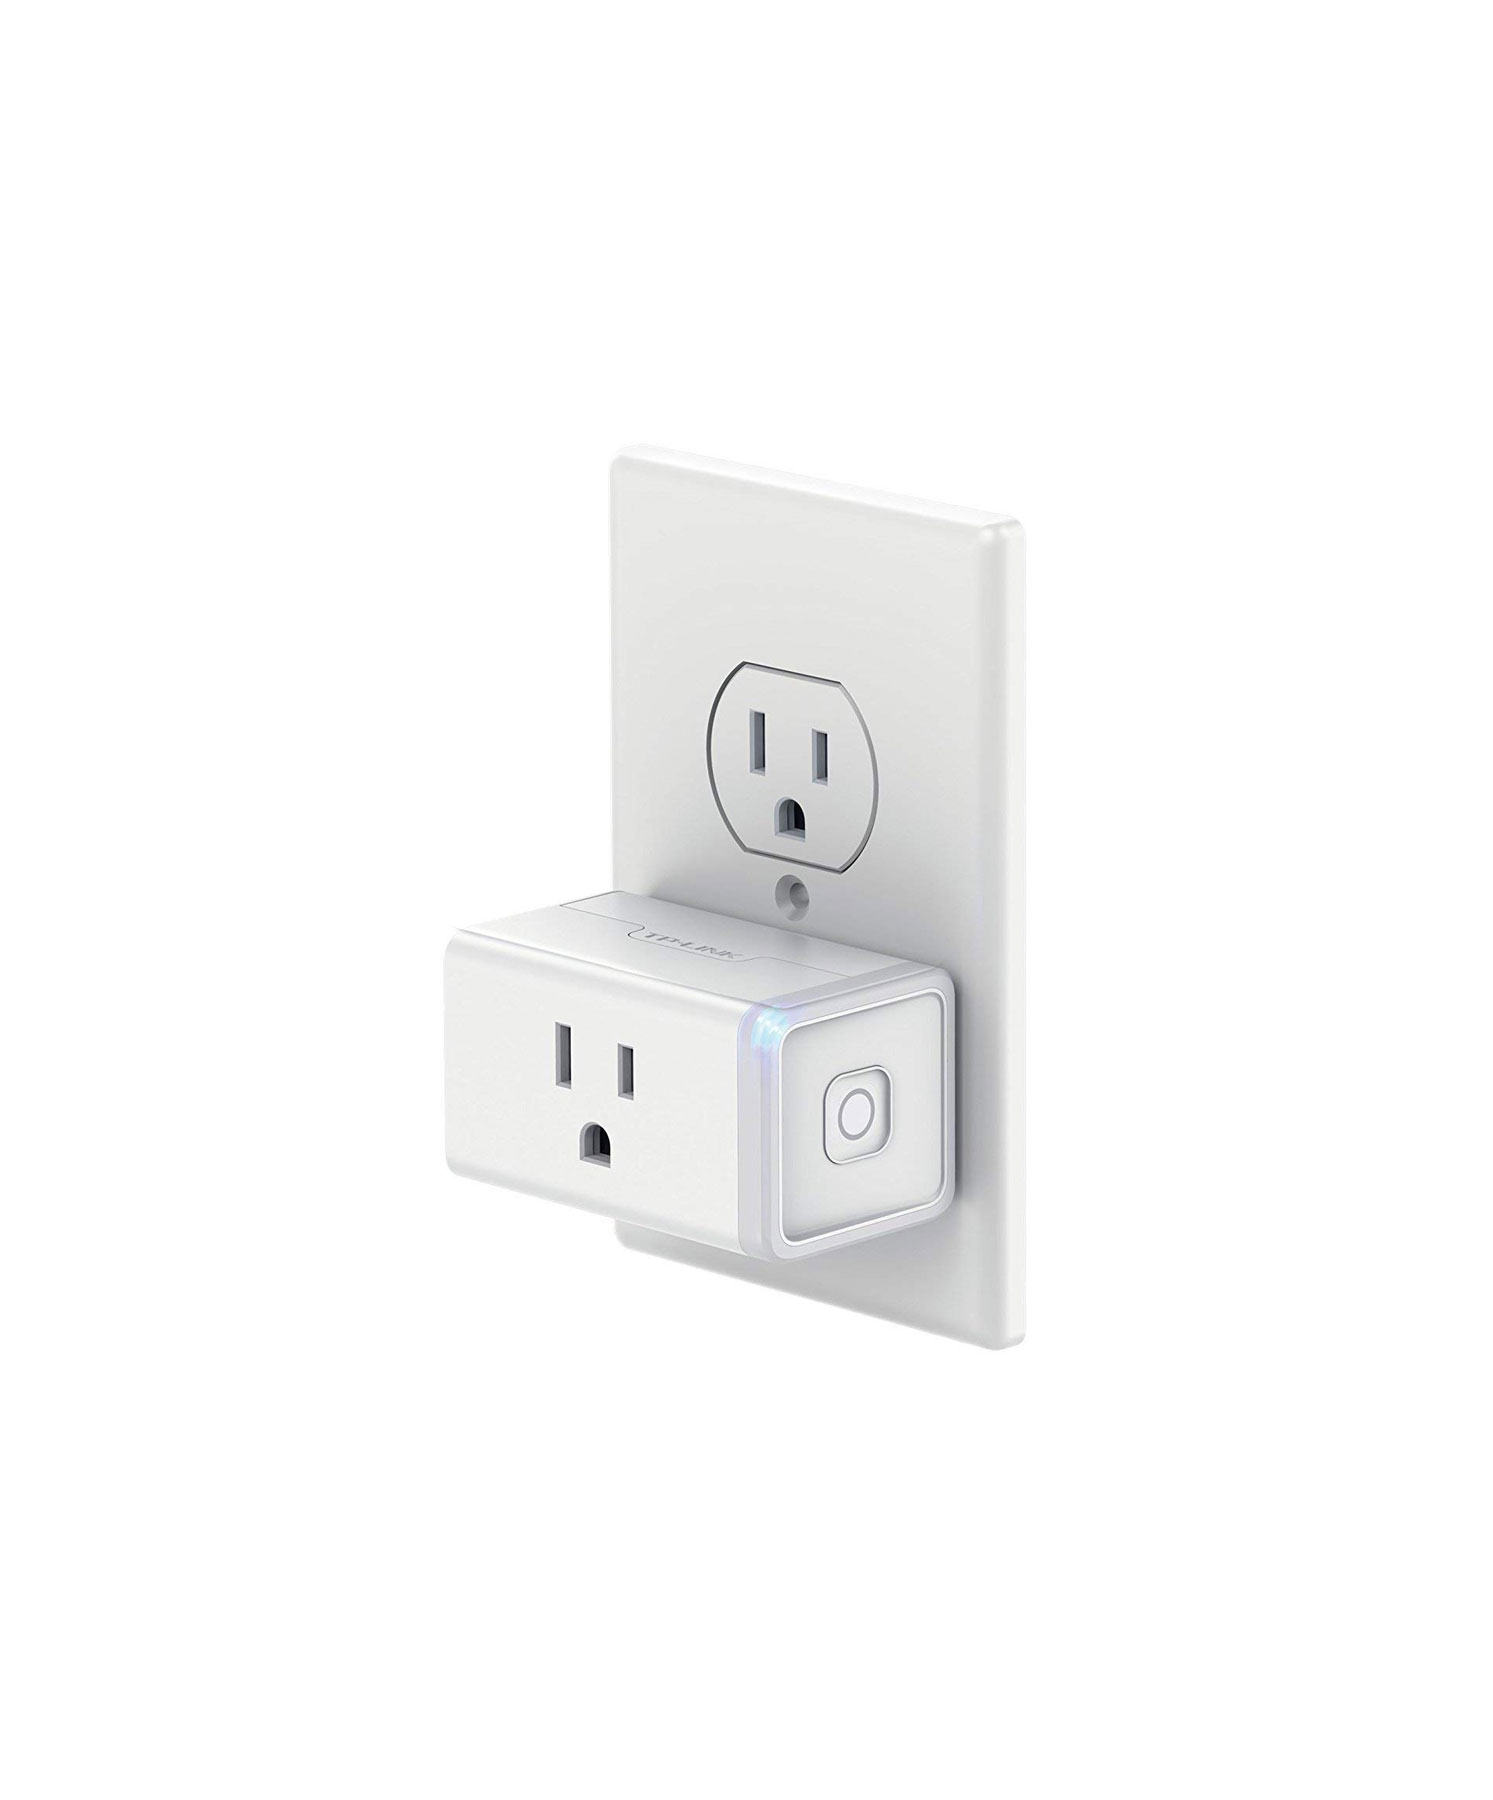 Smart Home Devices Starter Kit - Kasa Smart Plug by TP-Link